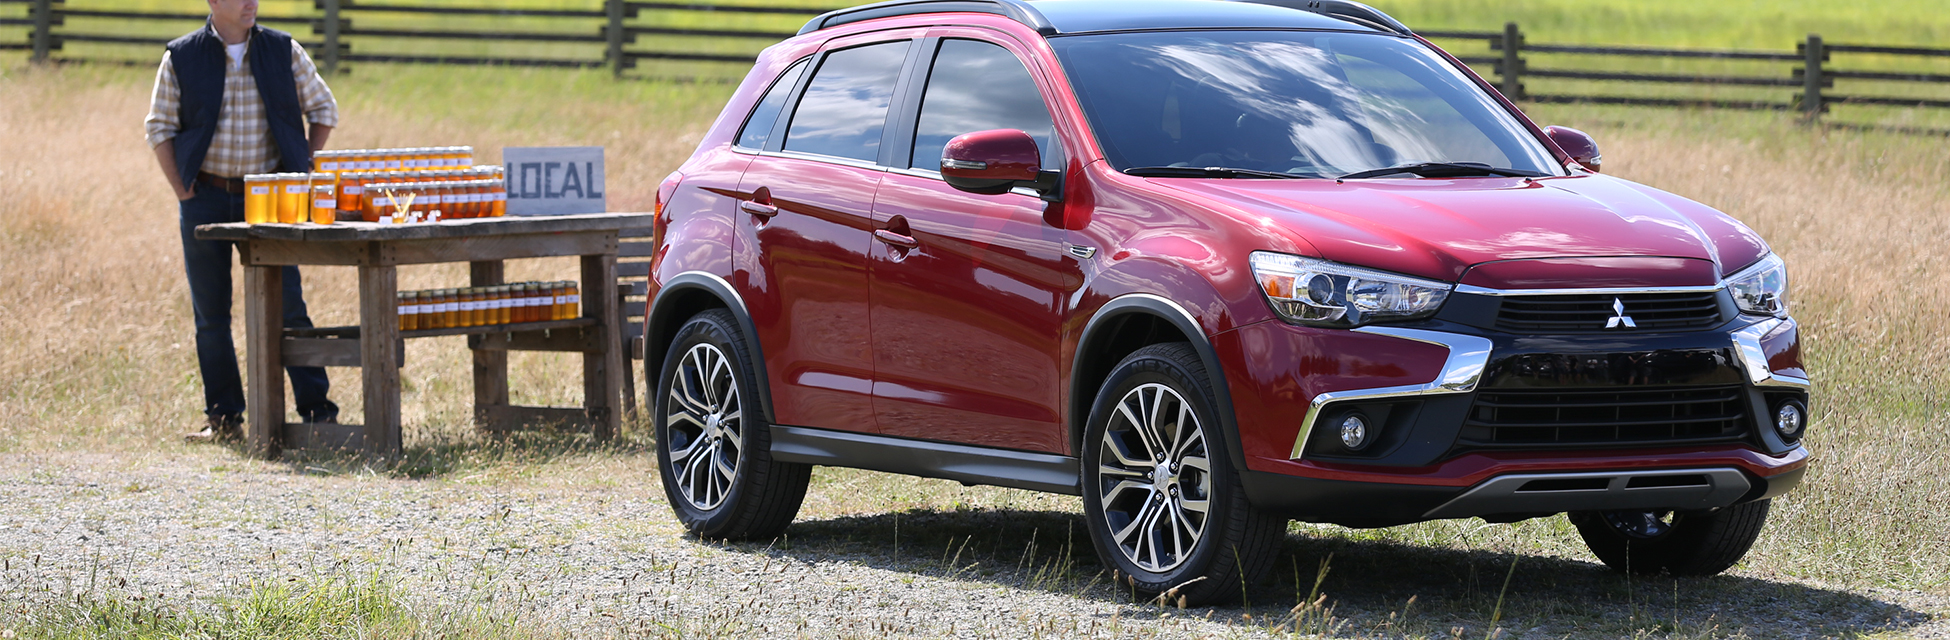 2017 Mitsubishi Outlander Sport Starting at $19,795